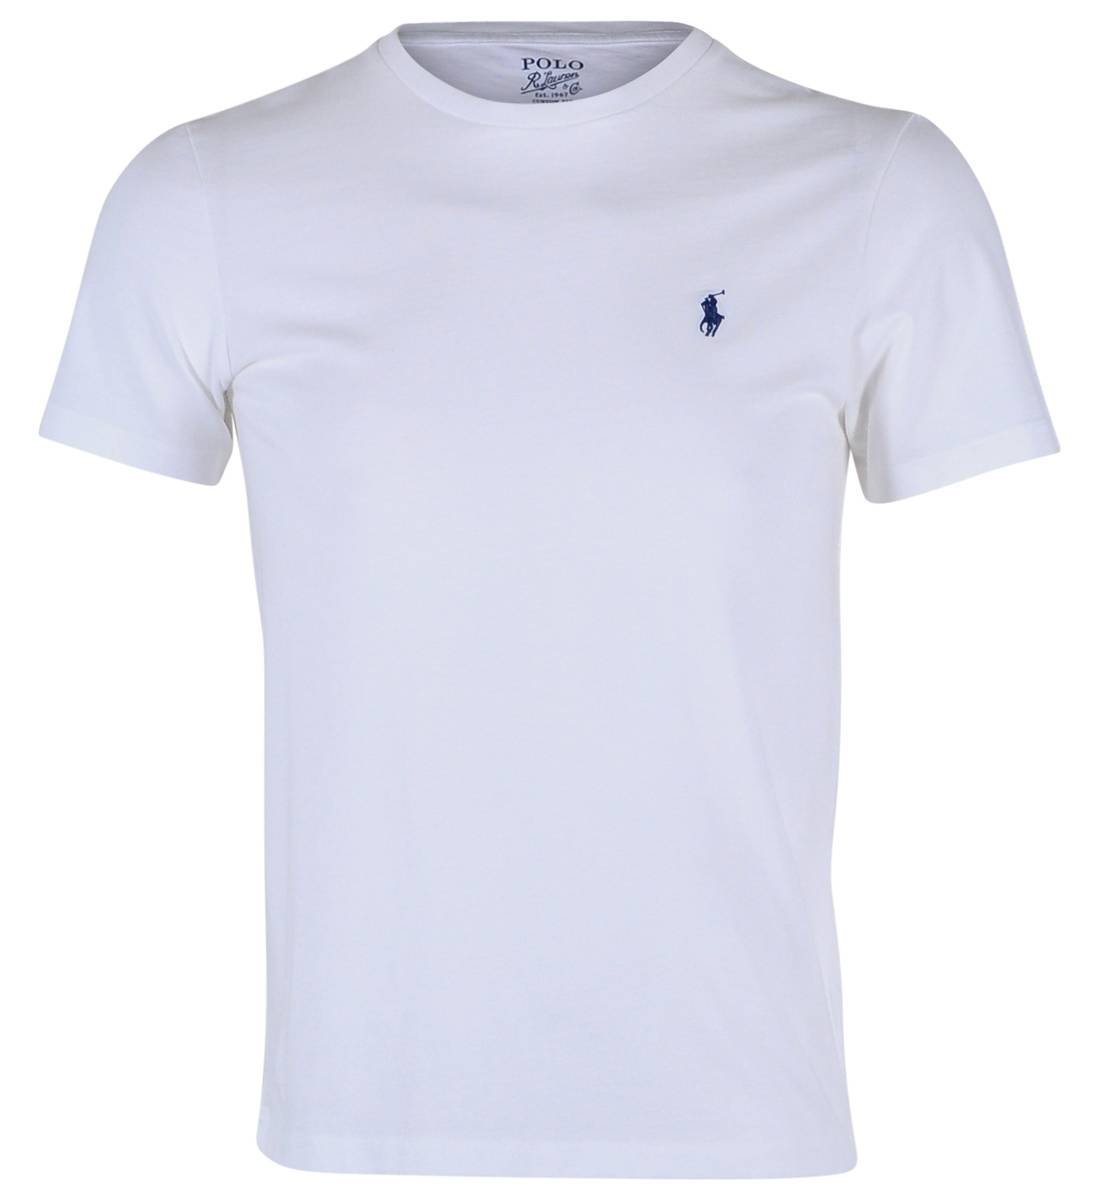 564a2000c6e Réduction authentique sweat shirt ralph lauren pas cher Baskets ...